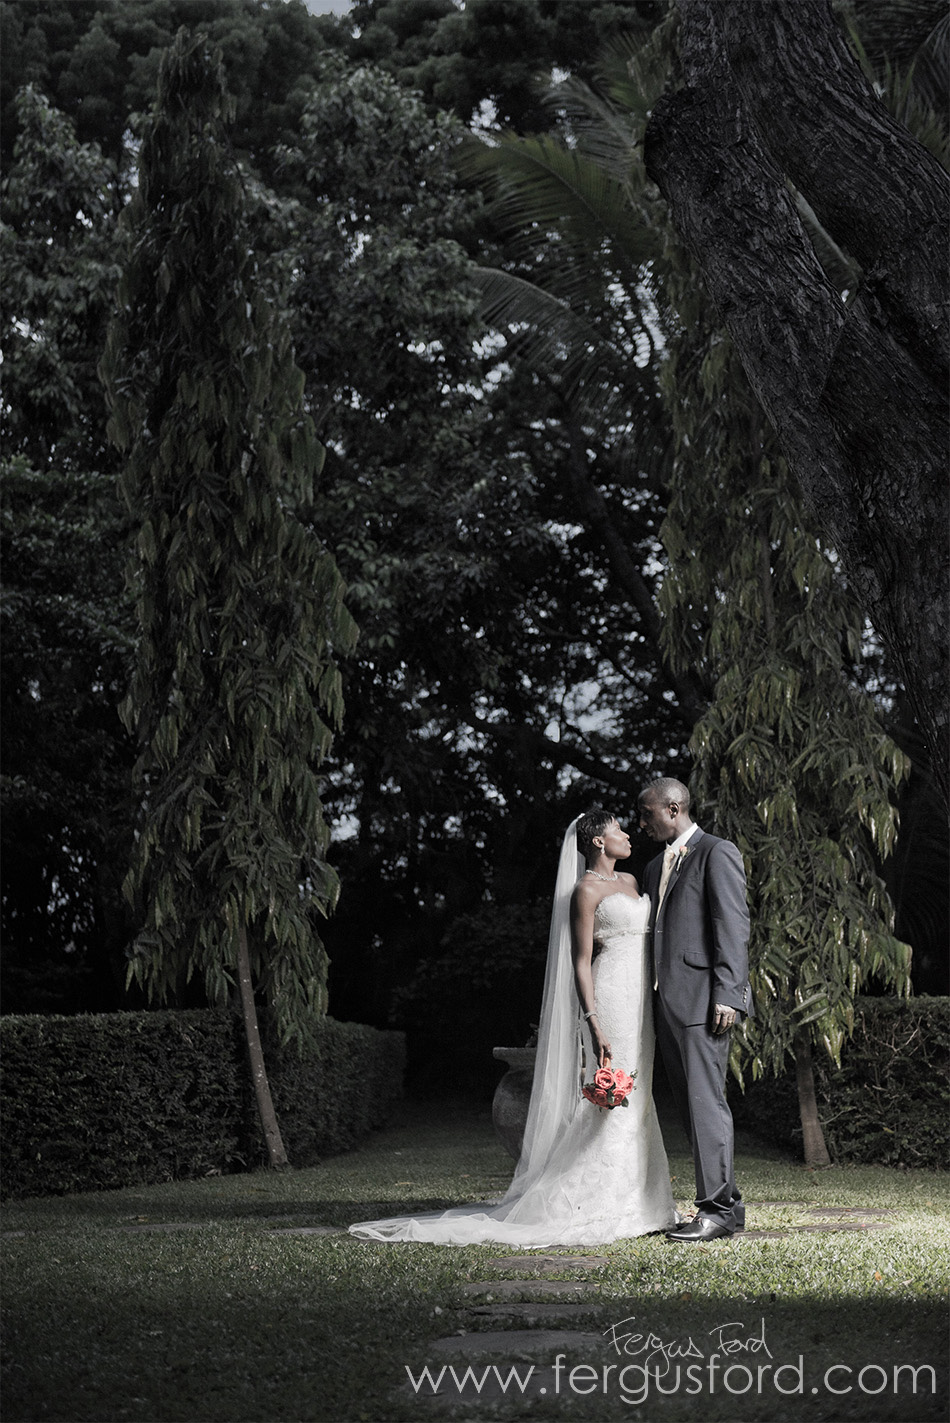 Wedding photography by my talented brother Fergus Ford! Beautiful composition with the trees and the happy couple © Fergus Ford